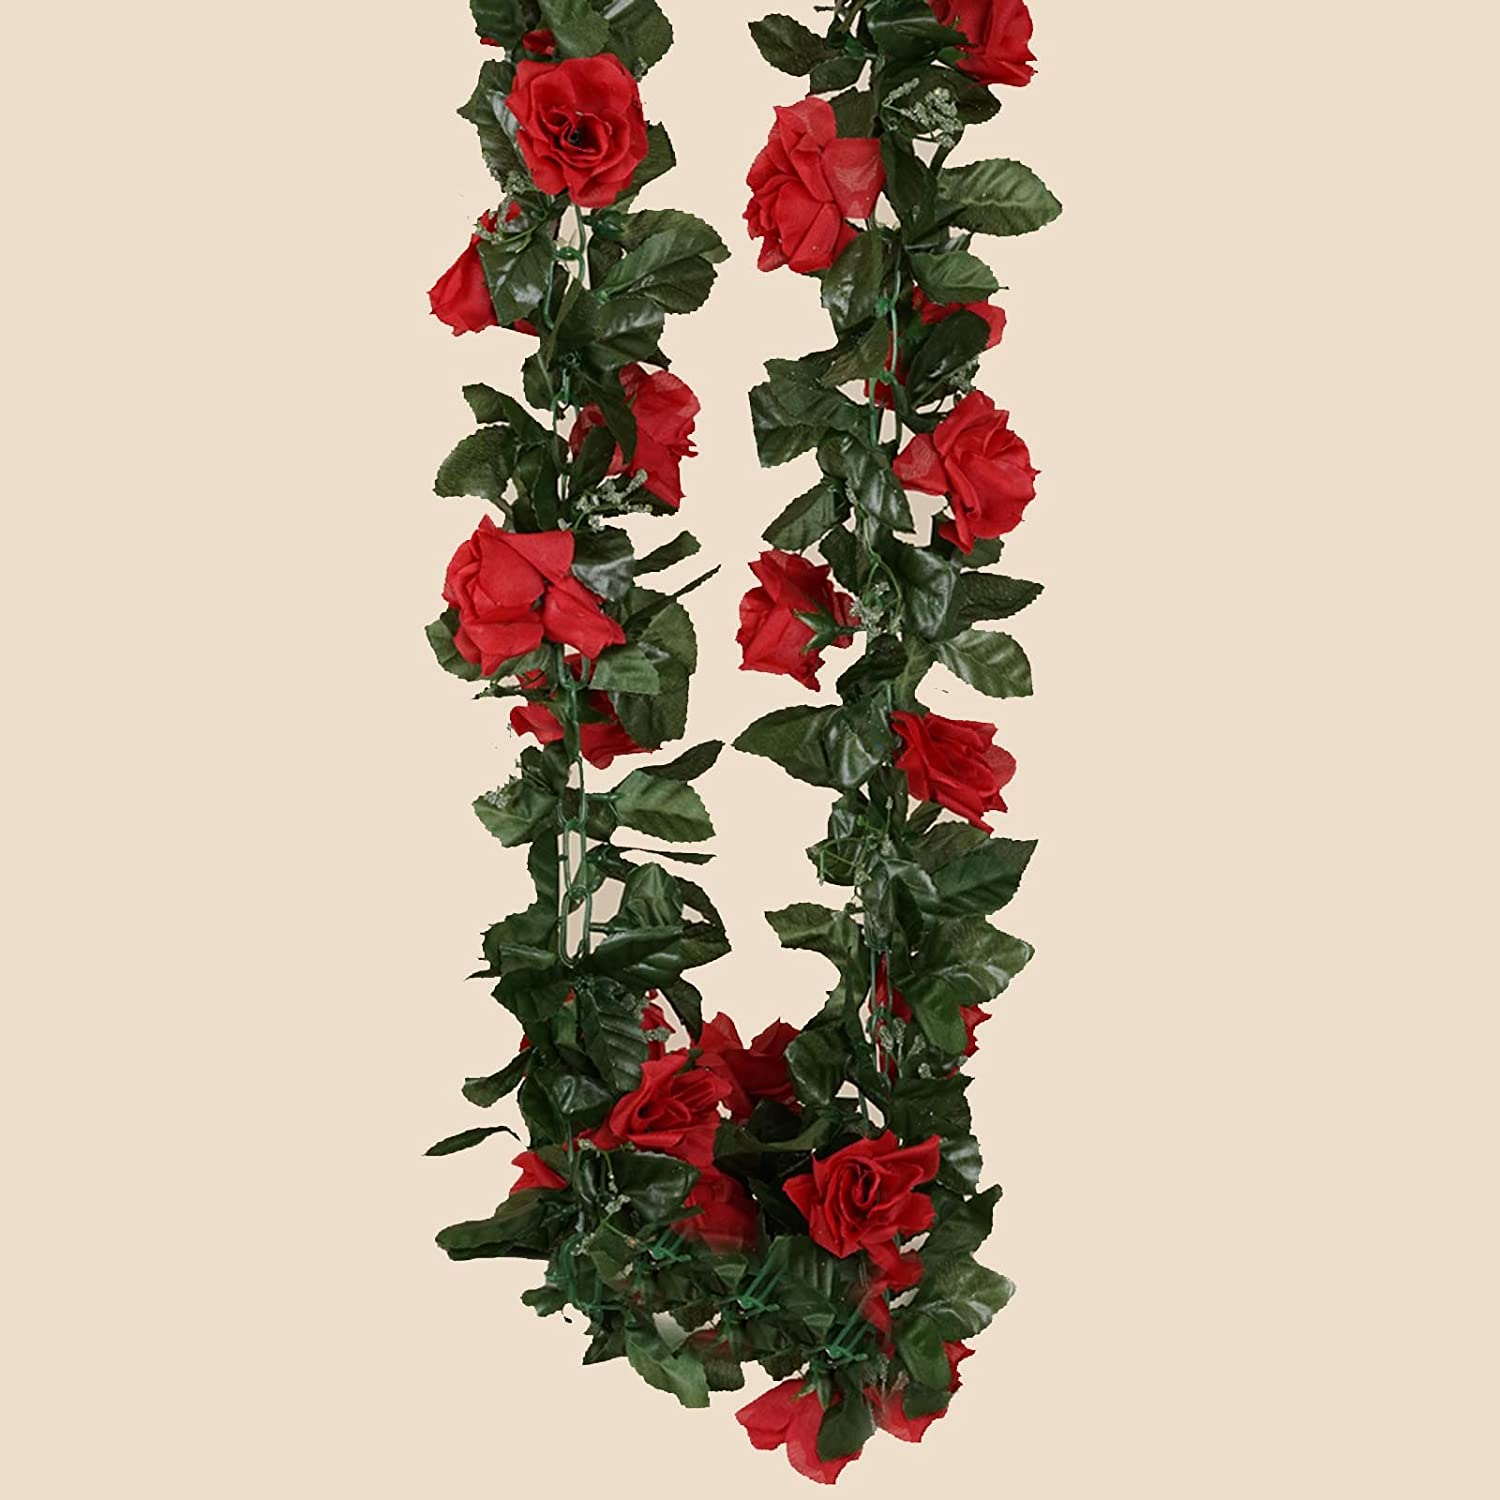 Amazon.com: BalsaCircle 24 ft Peach 3D Chain Silk Rose Garlands ...